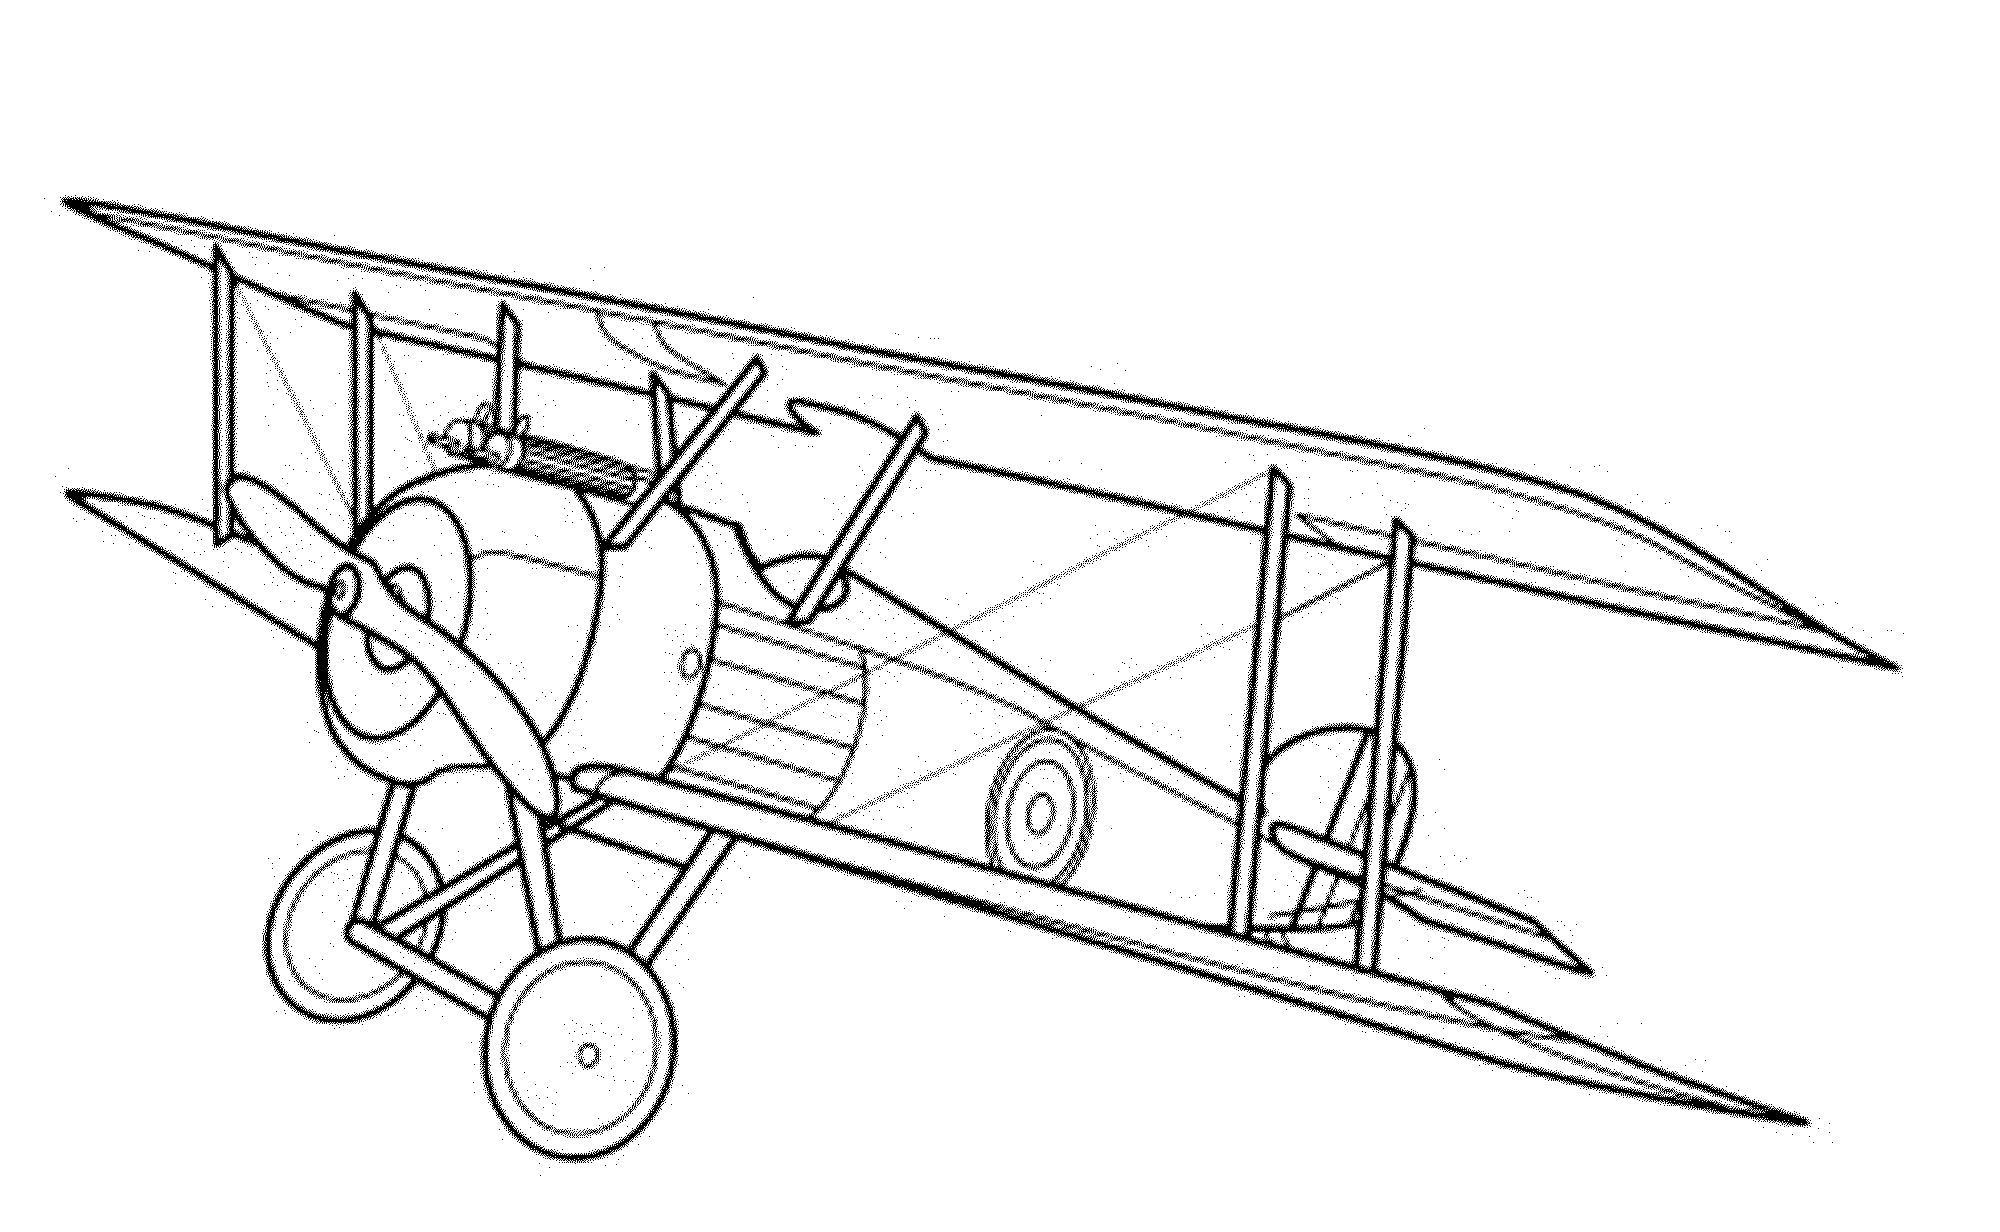 Coloring Pages For Airplanes : Vintage airplane coloring pages printable kids colouring